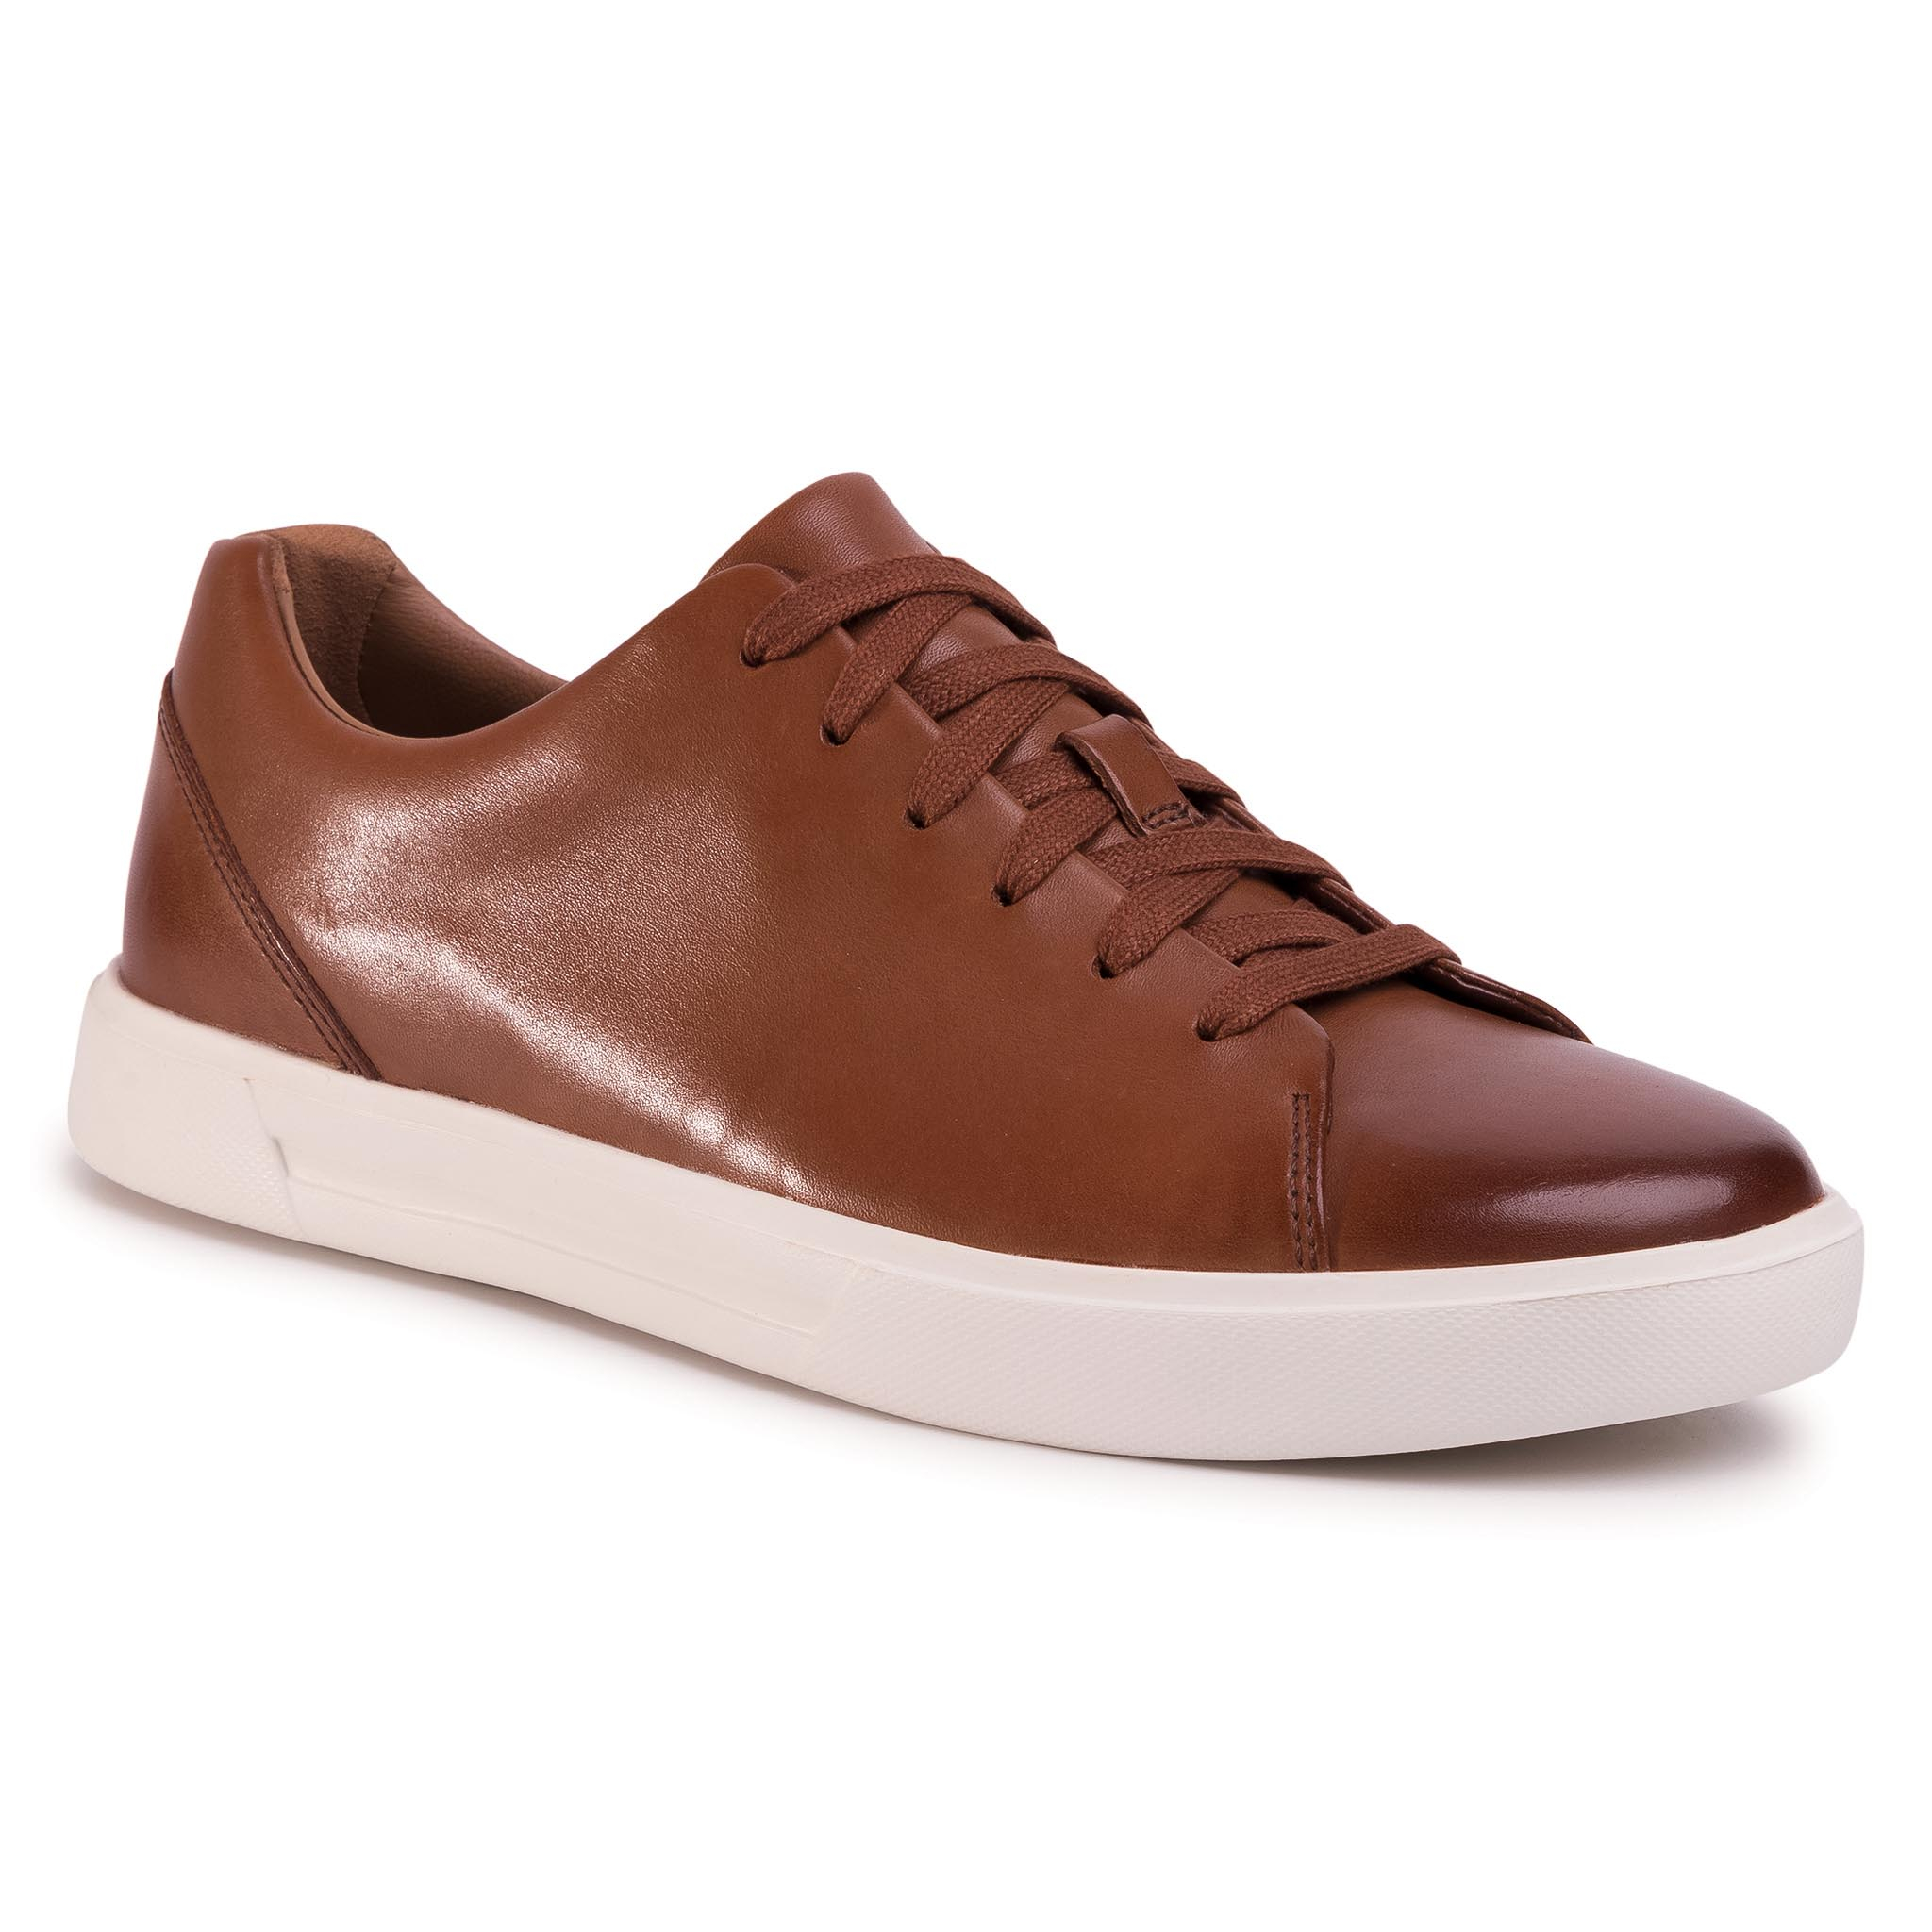 Sneakers CLARKS - Un Costa Lace 261486907 British Tan Leather